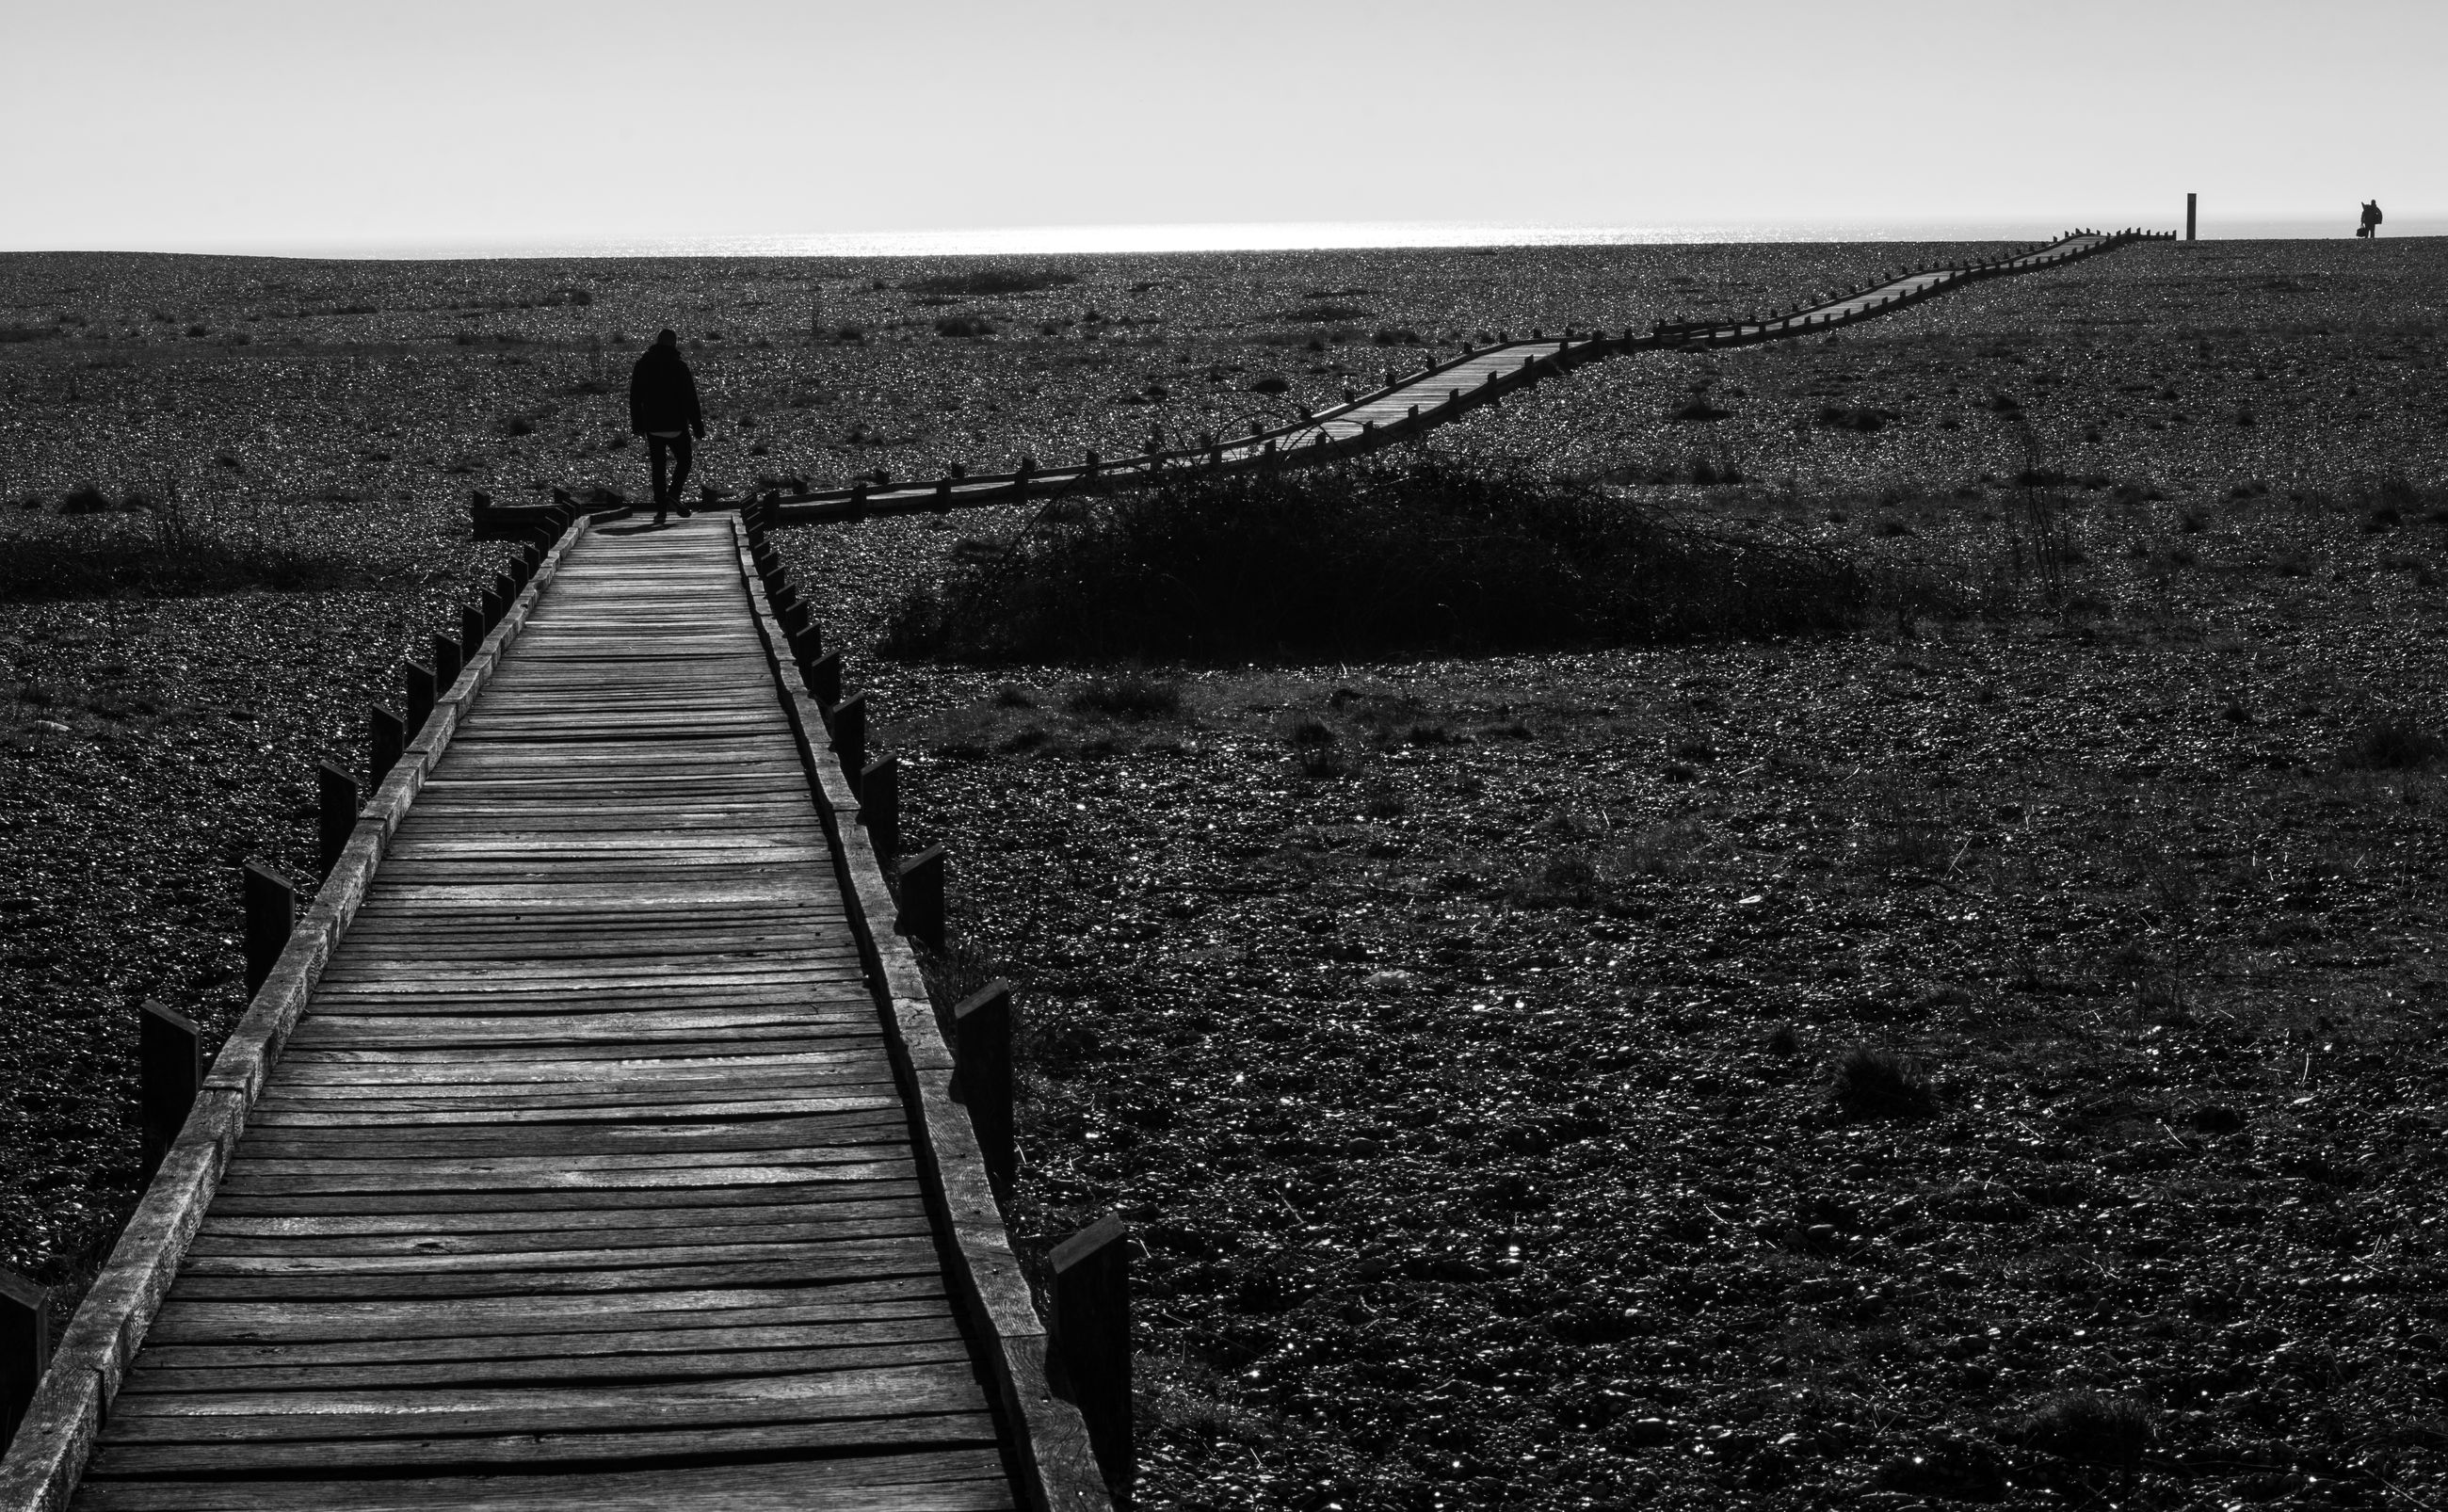 one person, land, walking, sky, nature, real people, tranquility, the way forward, field, lifestyles, tranquil scene, full length, day, landscape, direction, men, rear view, scenics - nature, leisure activity, standing, outdoors